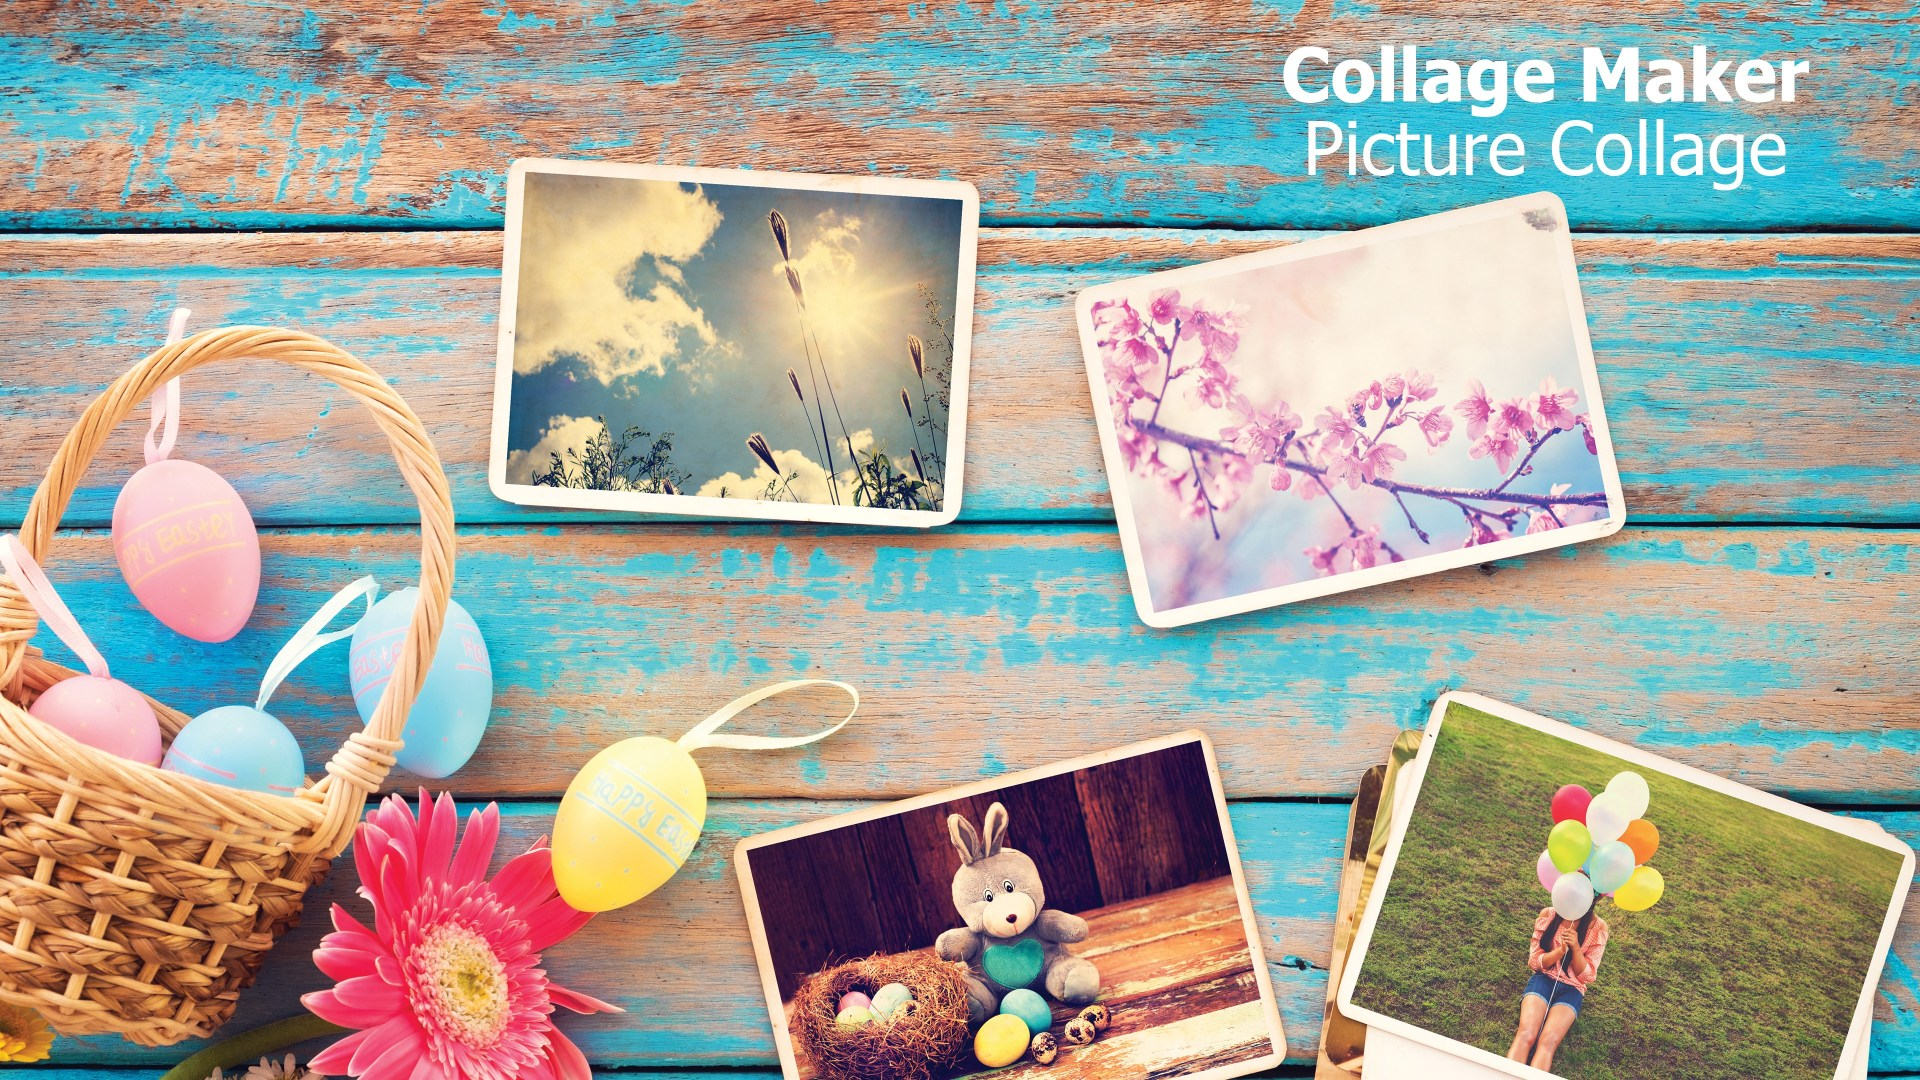 Collage Photo Get Collage Maker Picture Collage Microsoft Store